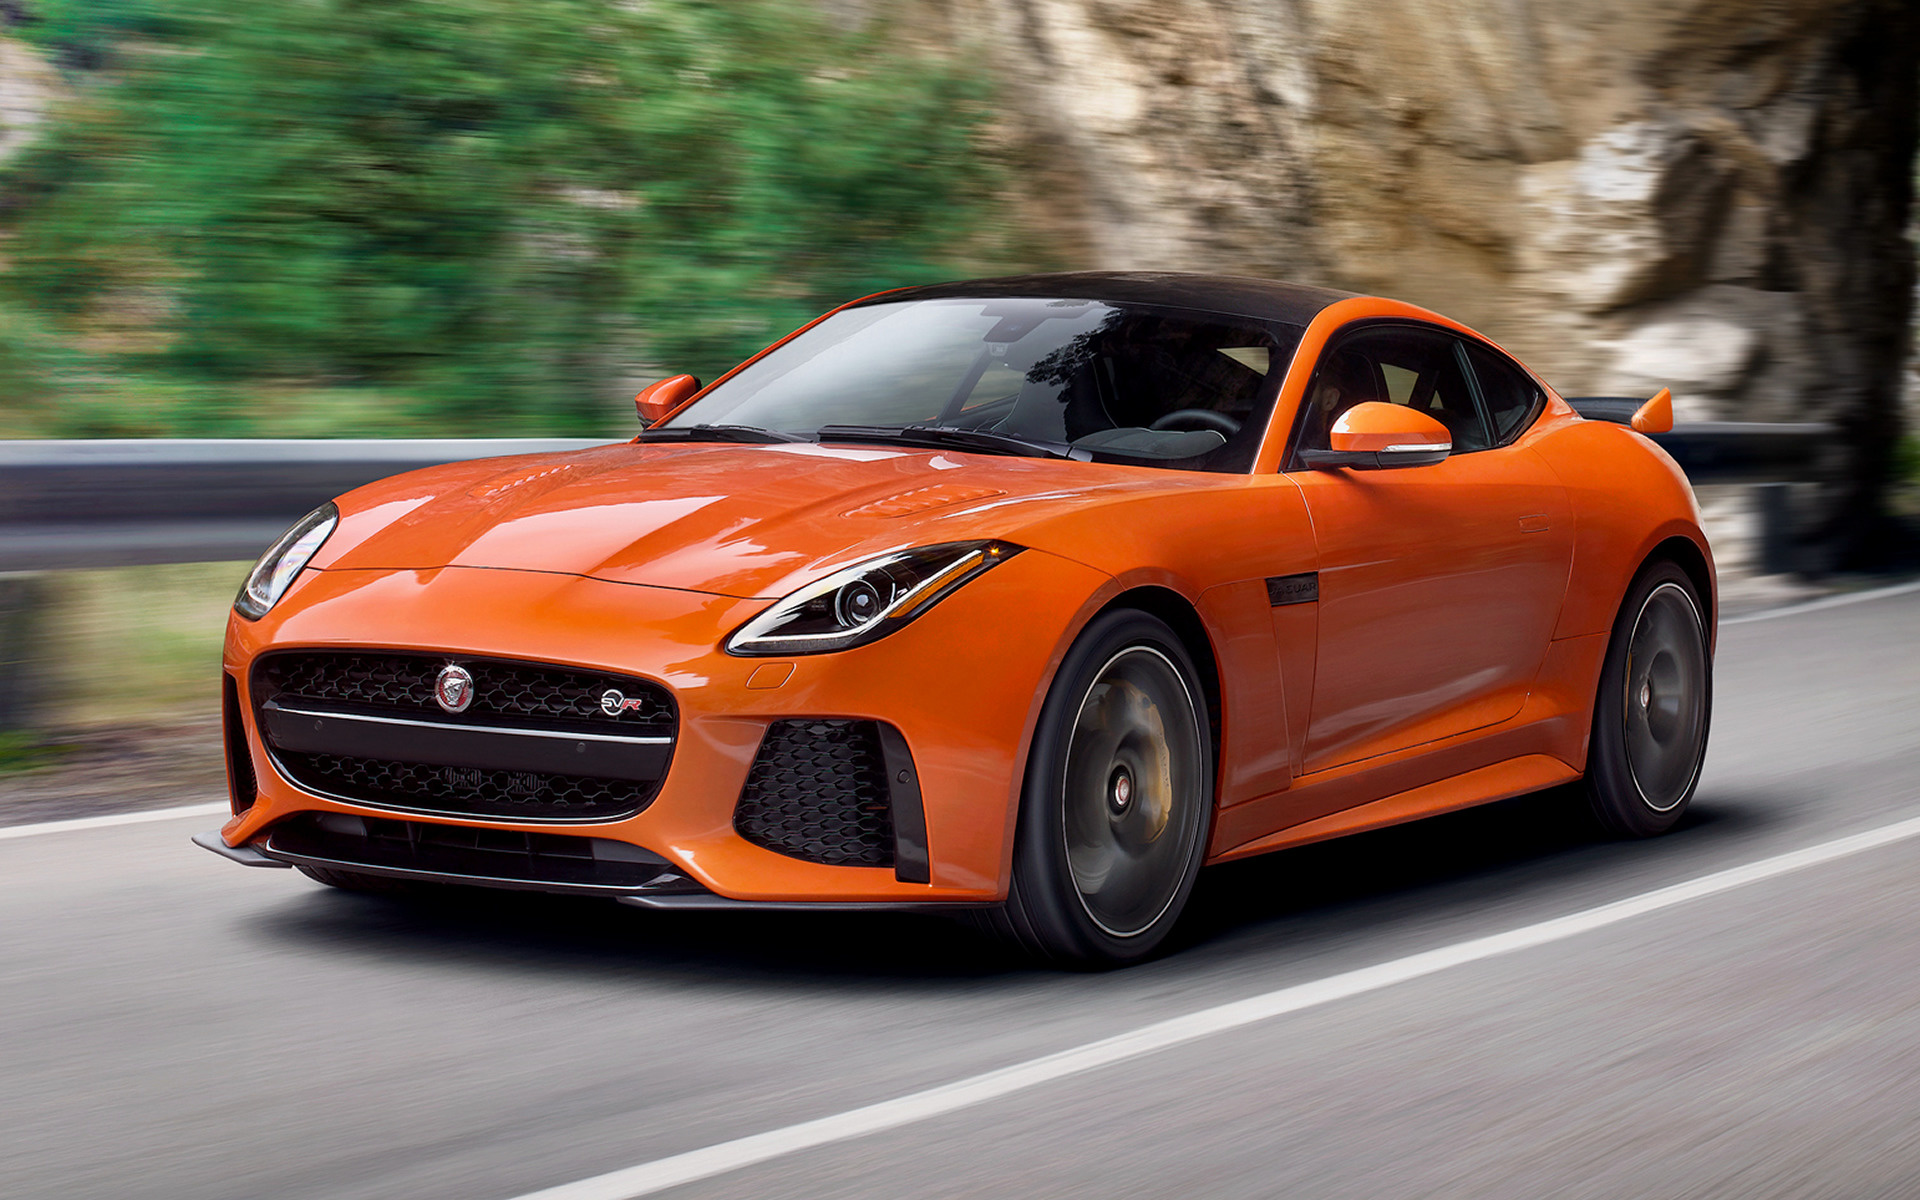 Jaguar F Type Coupe >> 2016 Jaguar F-Type SVR Coupe (US) - Wallpapers and HD ...